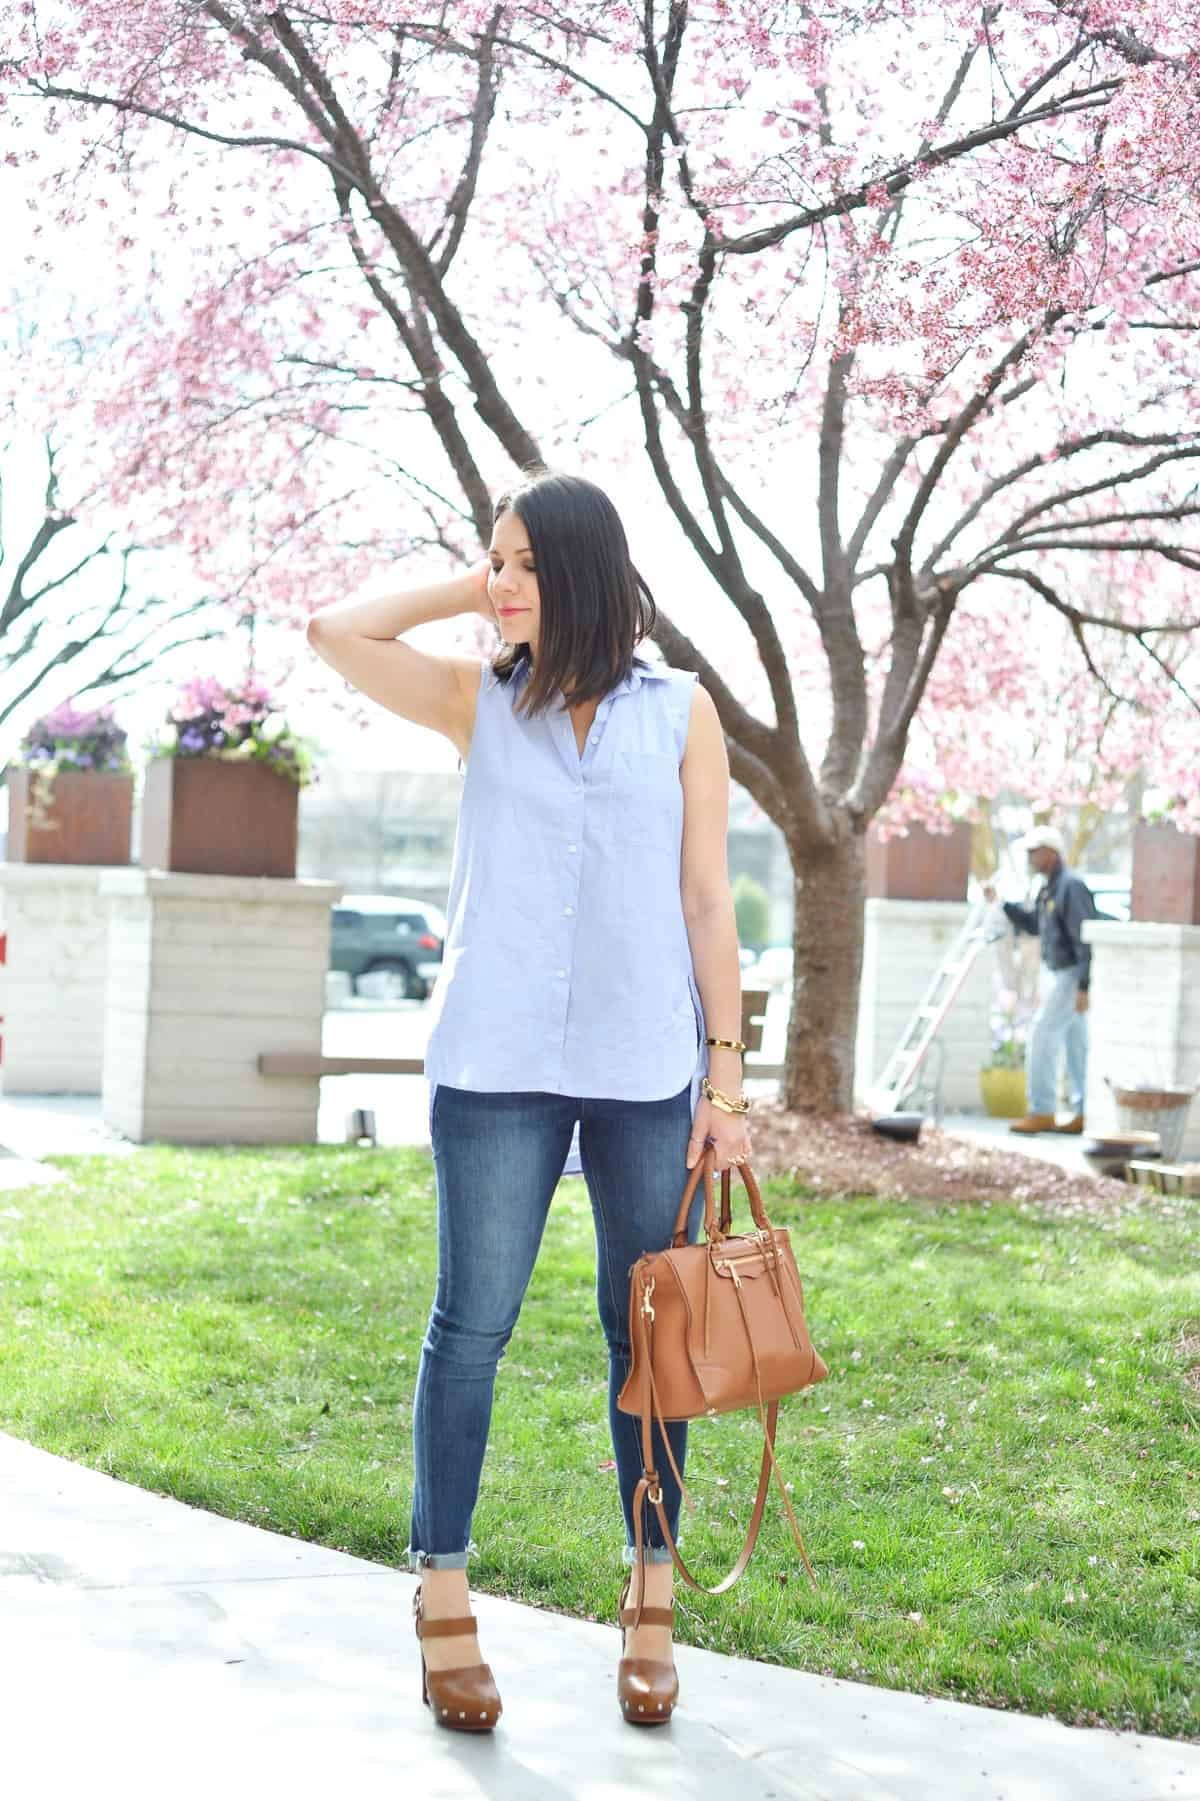 Vince Camuto Elric Shoe for spring - My Style Vita - @mystylevita - 14